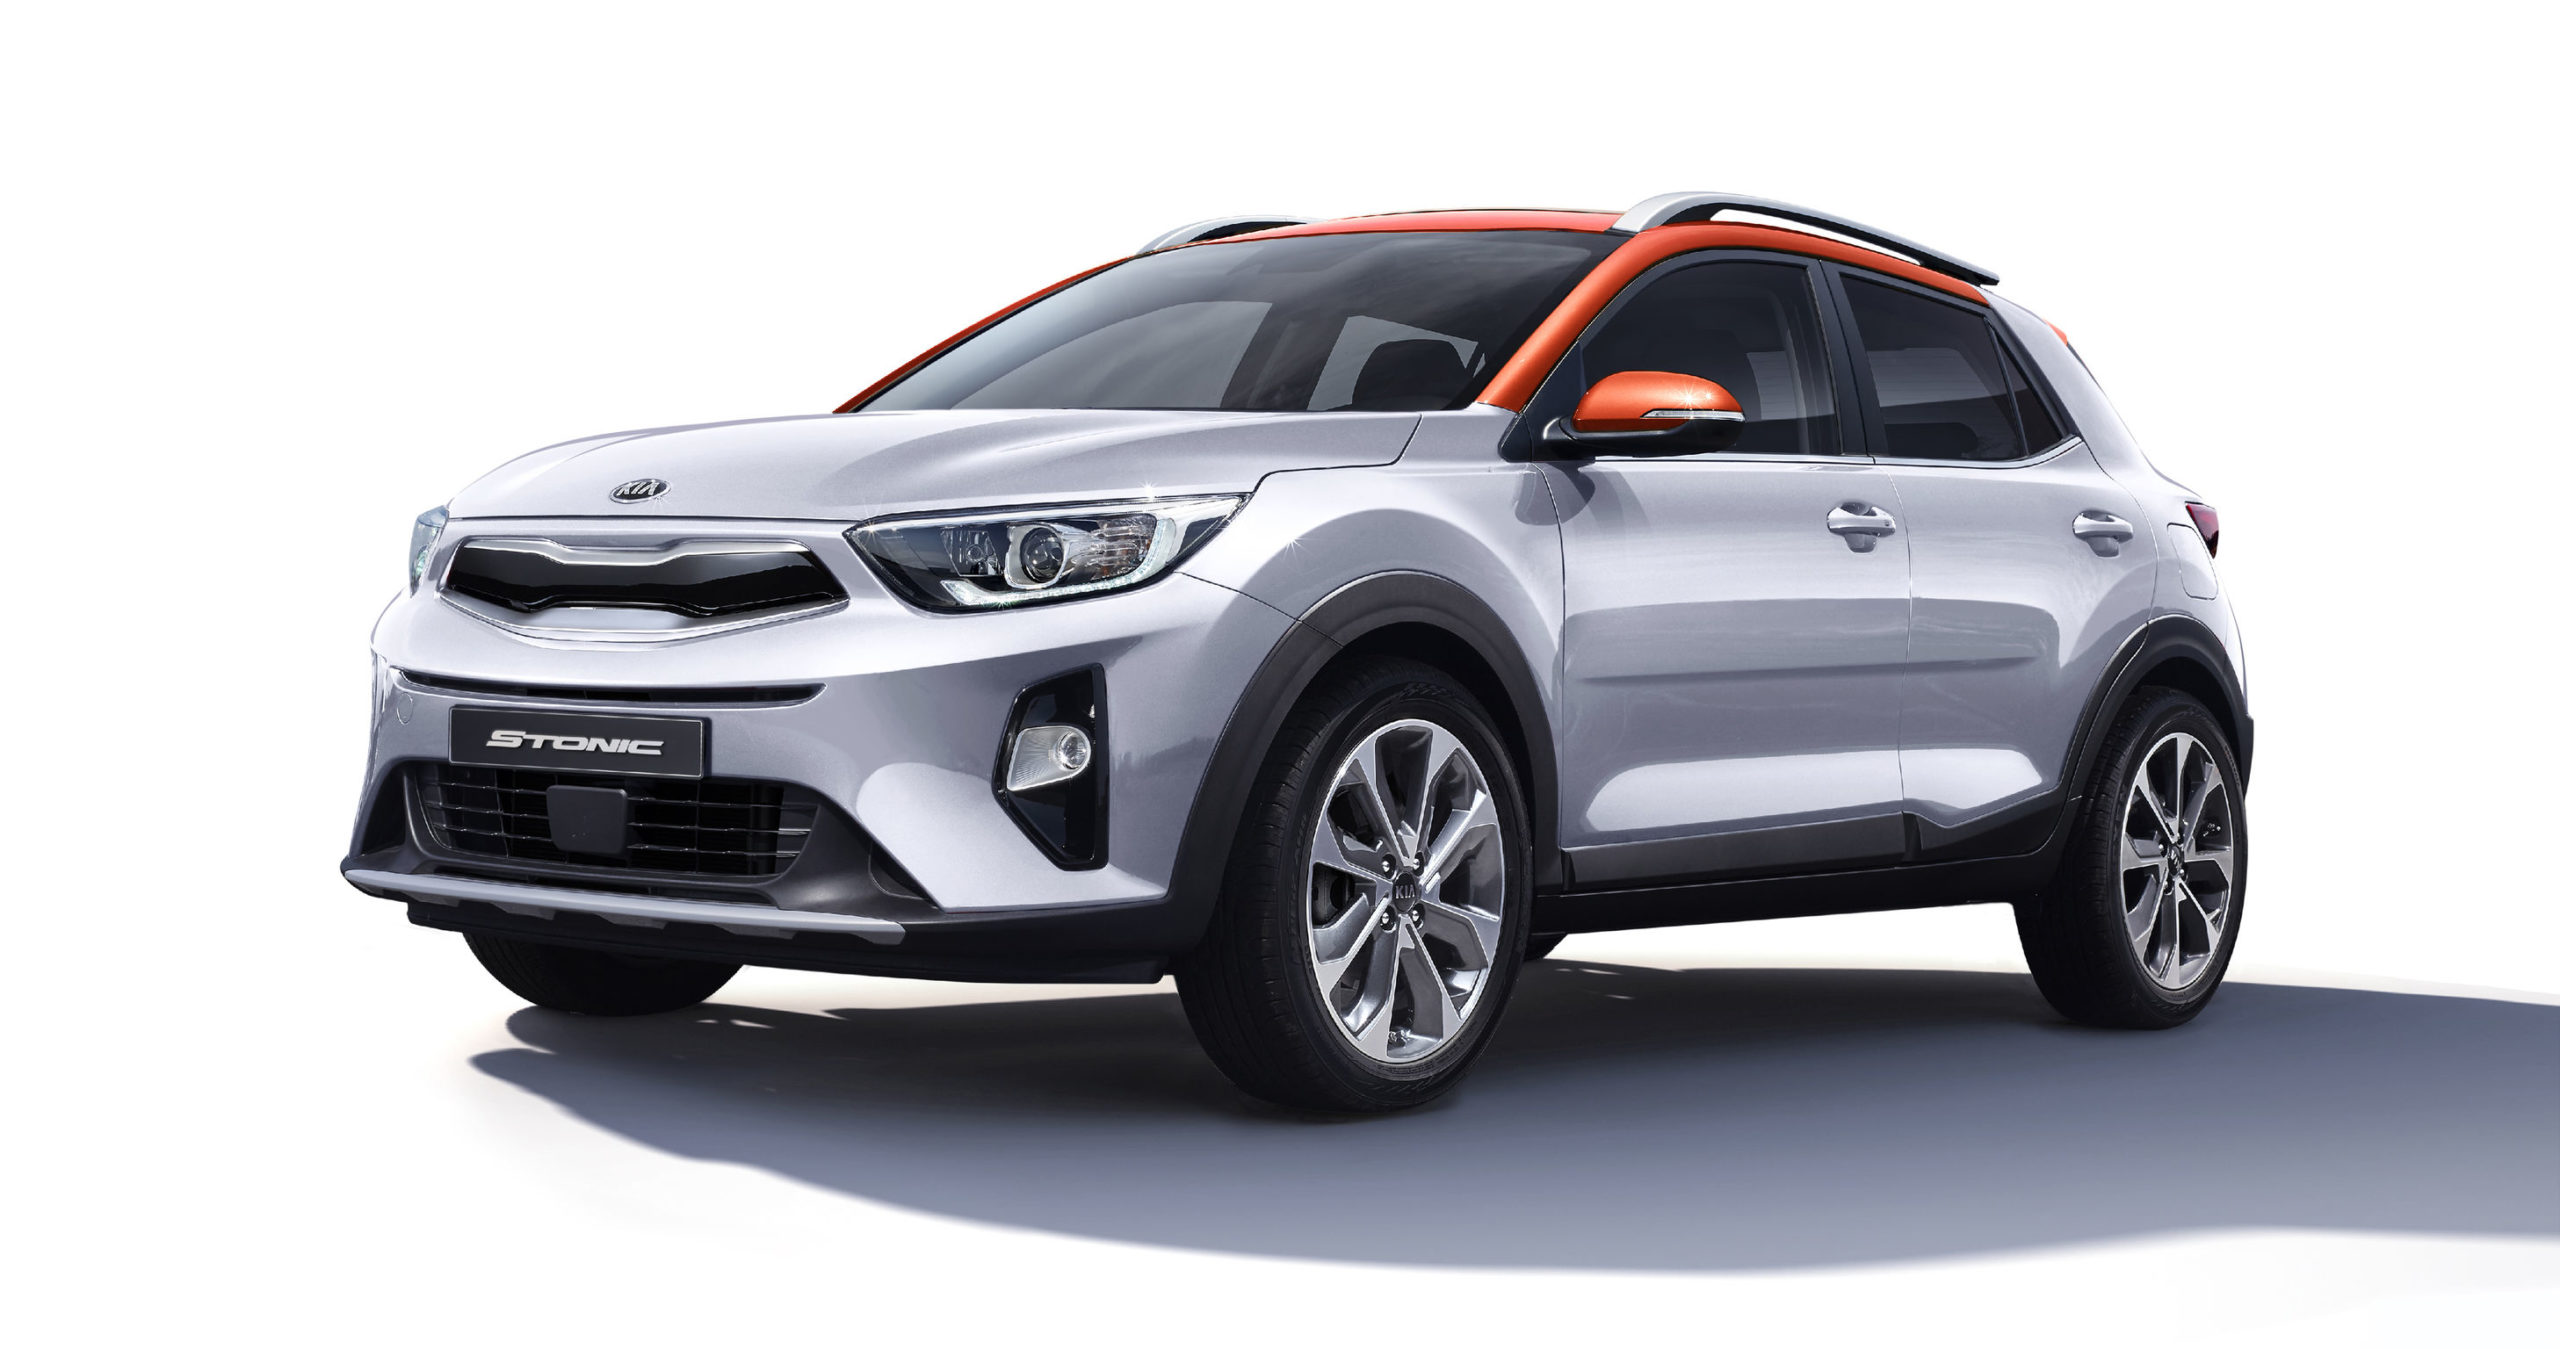 Kia and a new stonic Suv launch